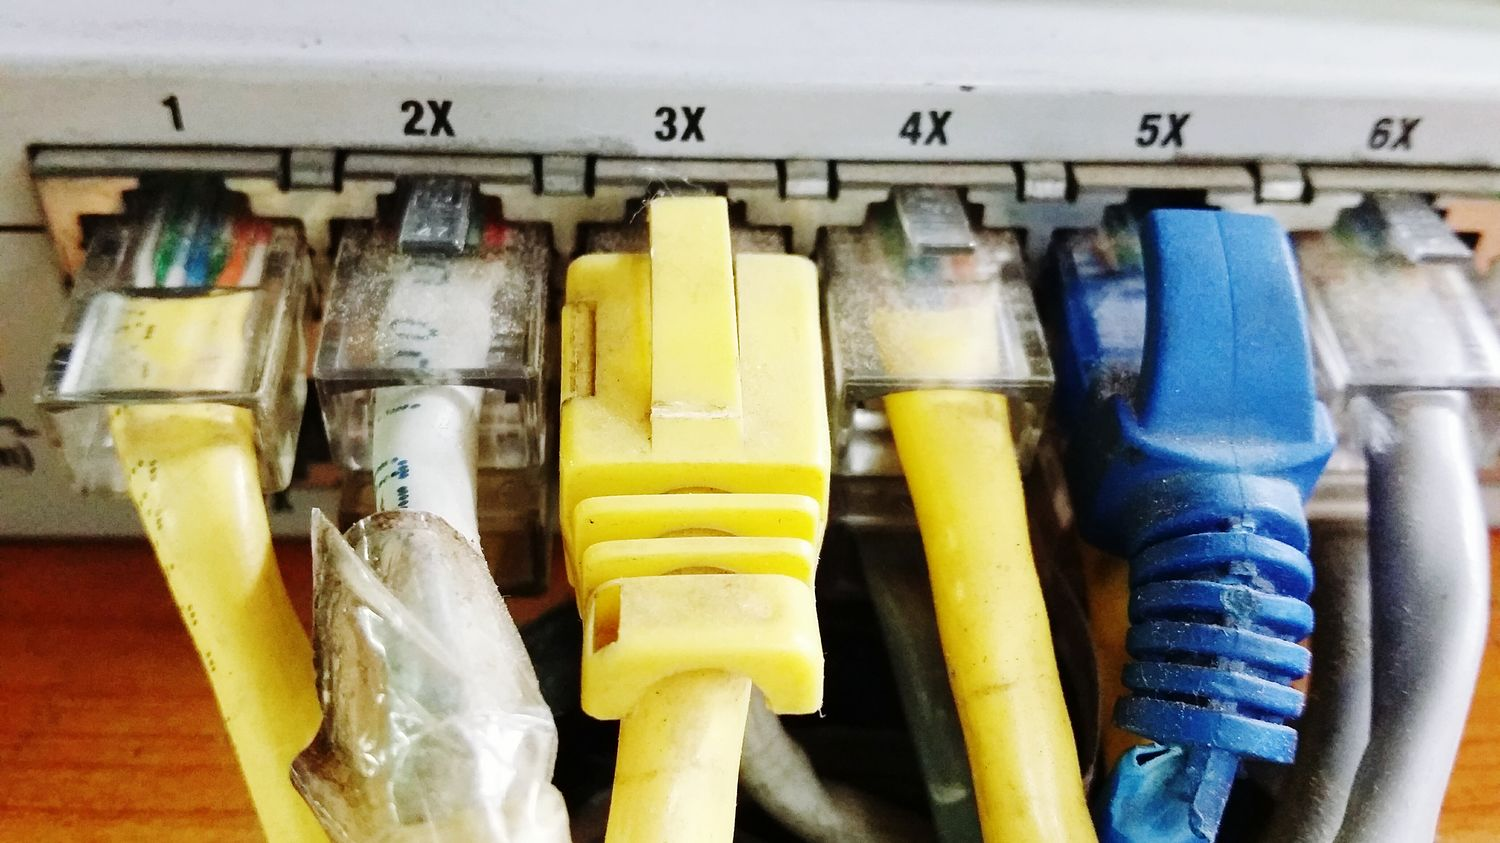 Precision Networking RJ45 Cables Cabling Switch